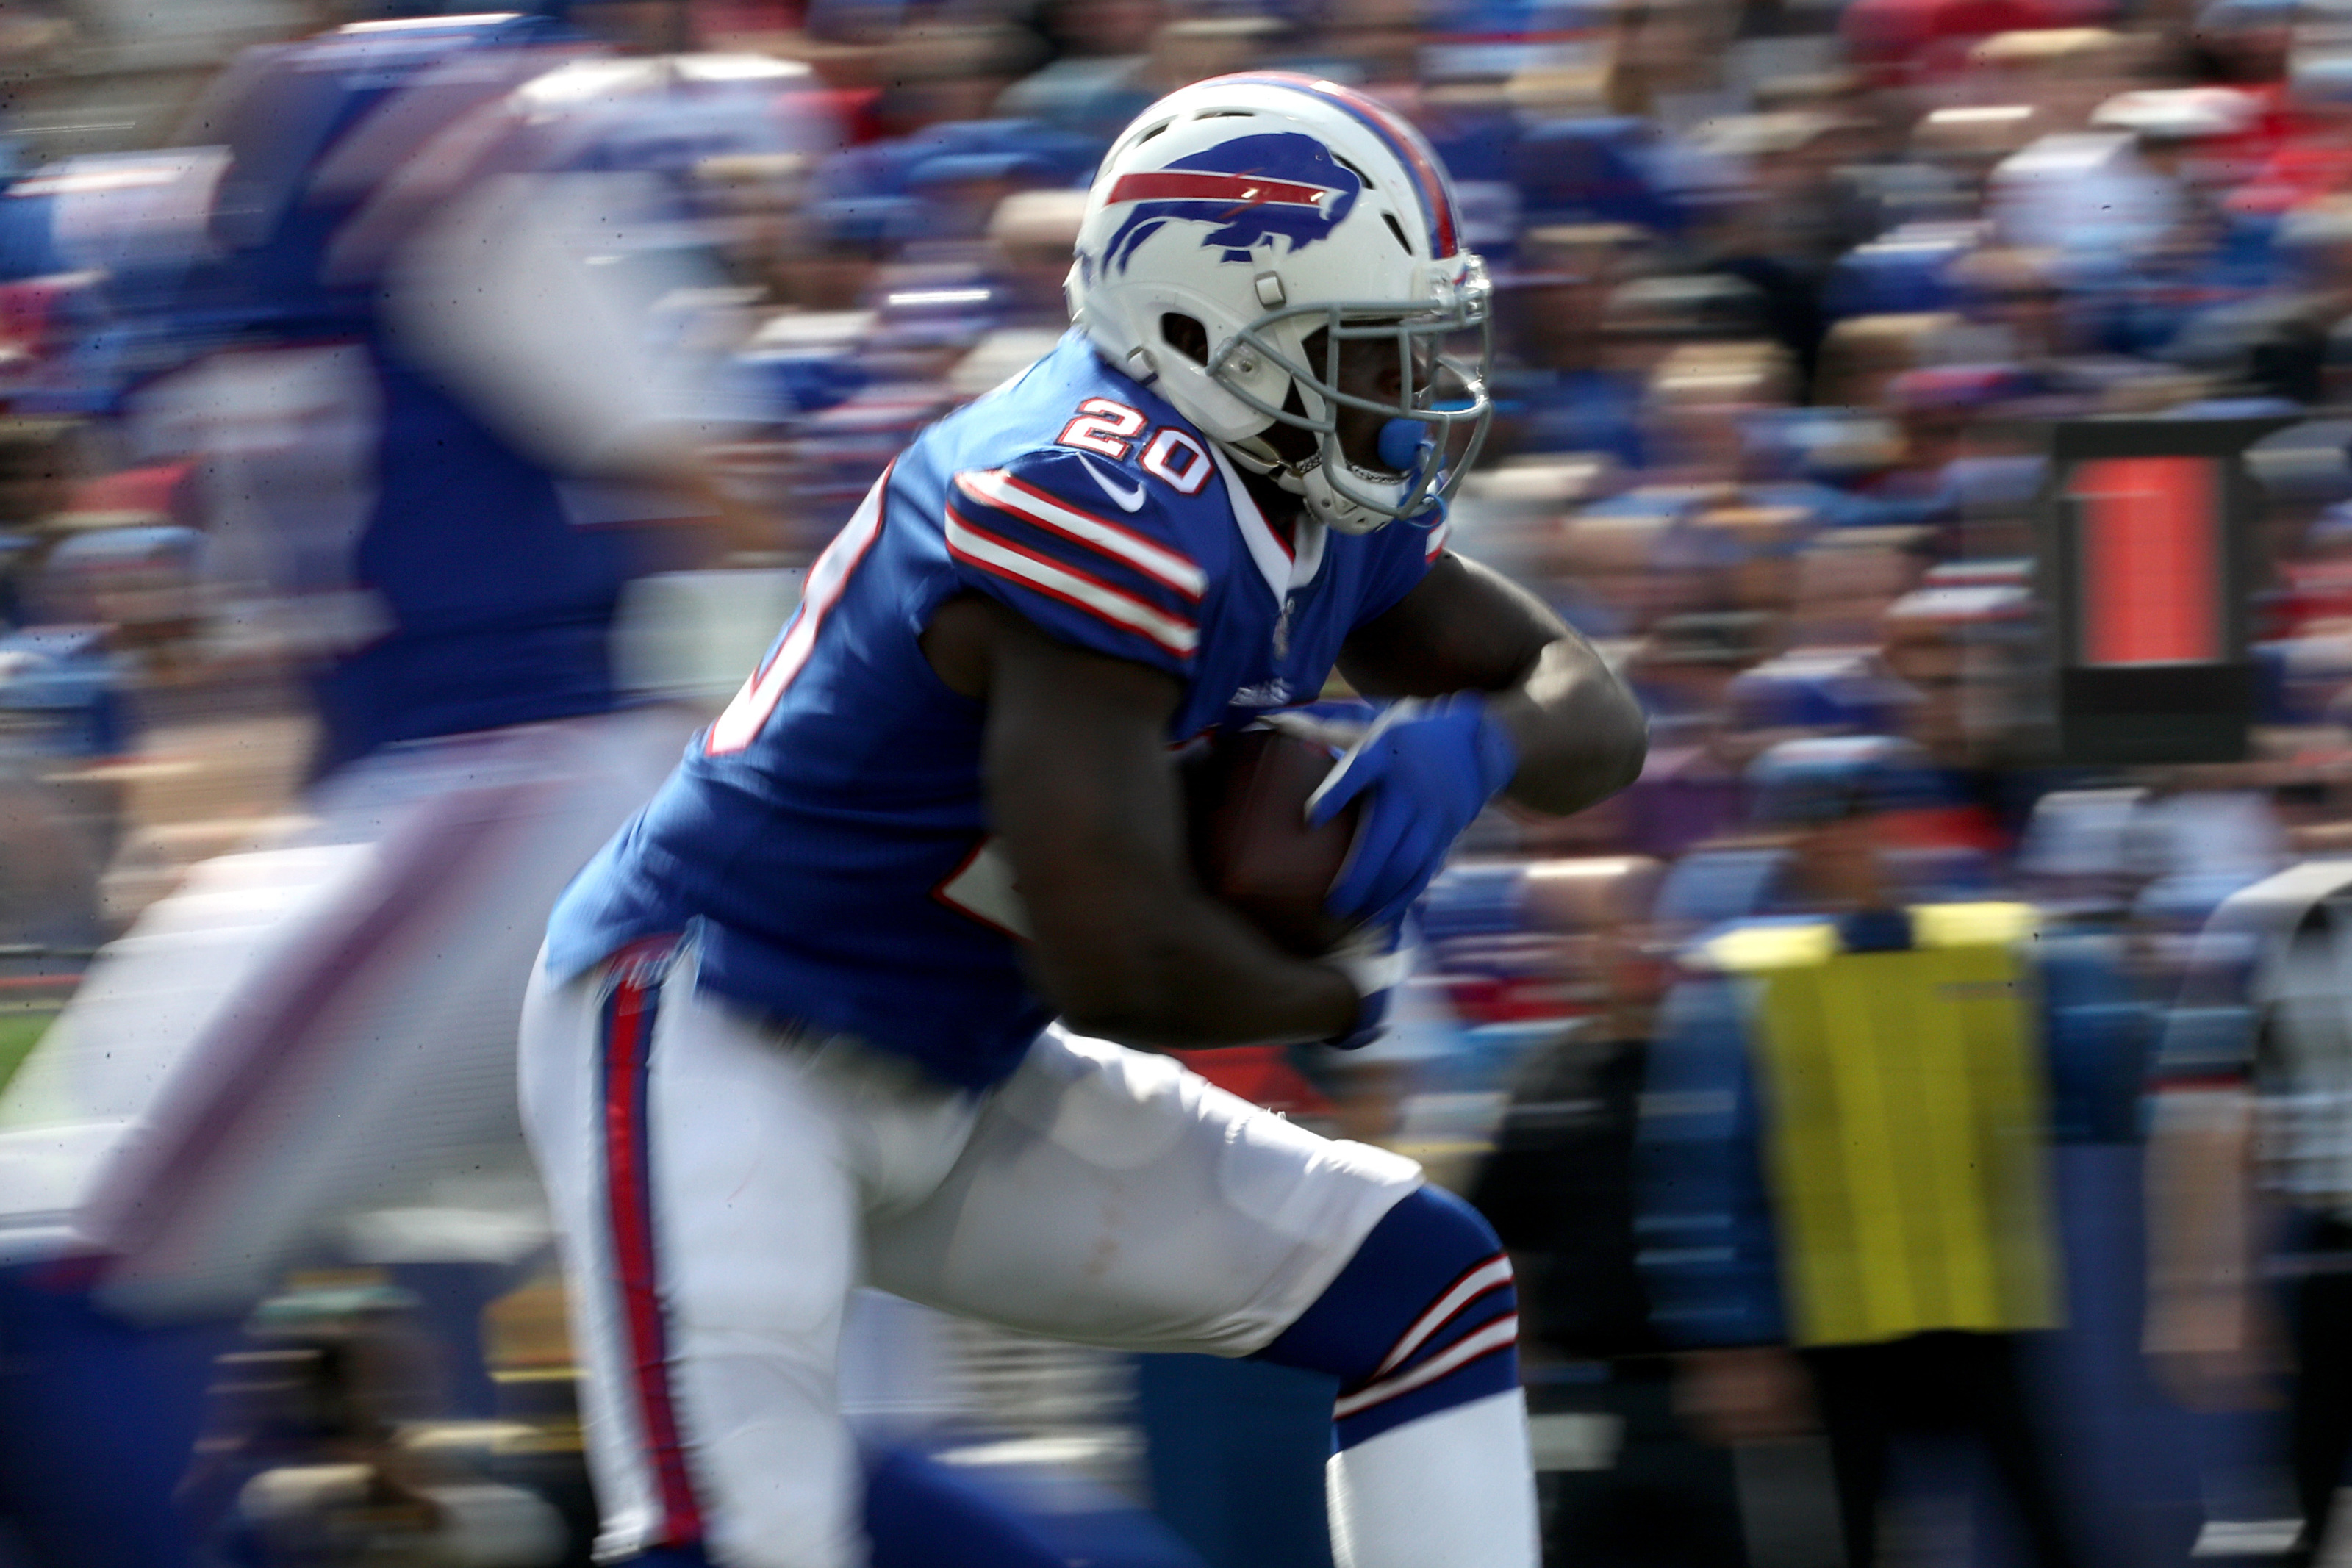 Philadelphia Eagles: The second time's the charm for Frank Gore